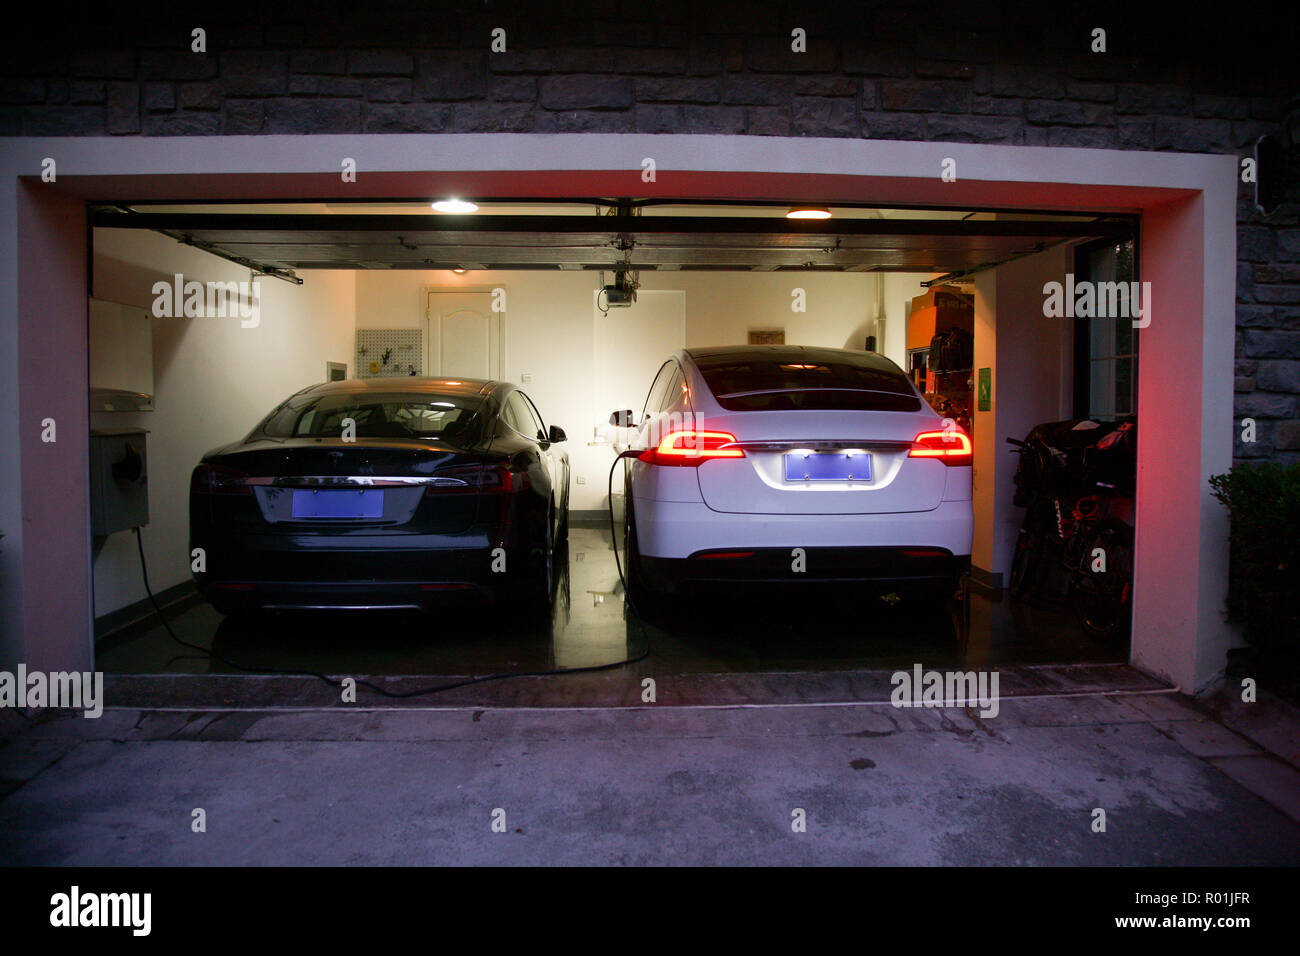 Garage Audi Lille Villa Garage Stock Photo 223771291 Alamy